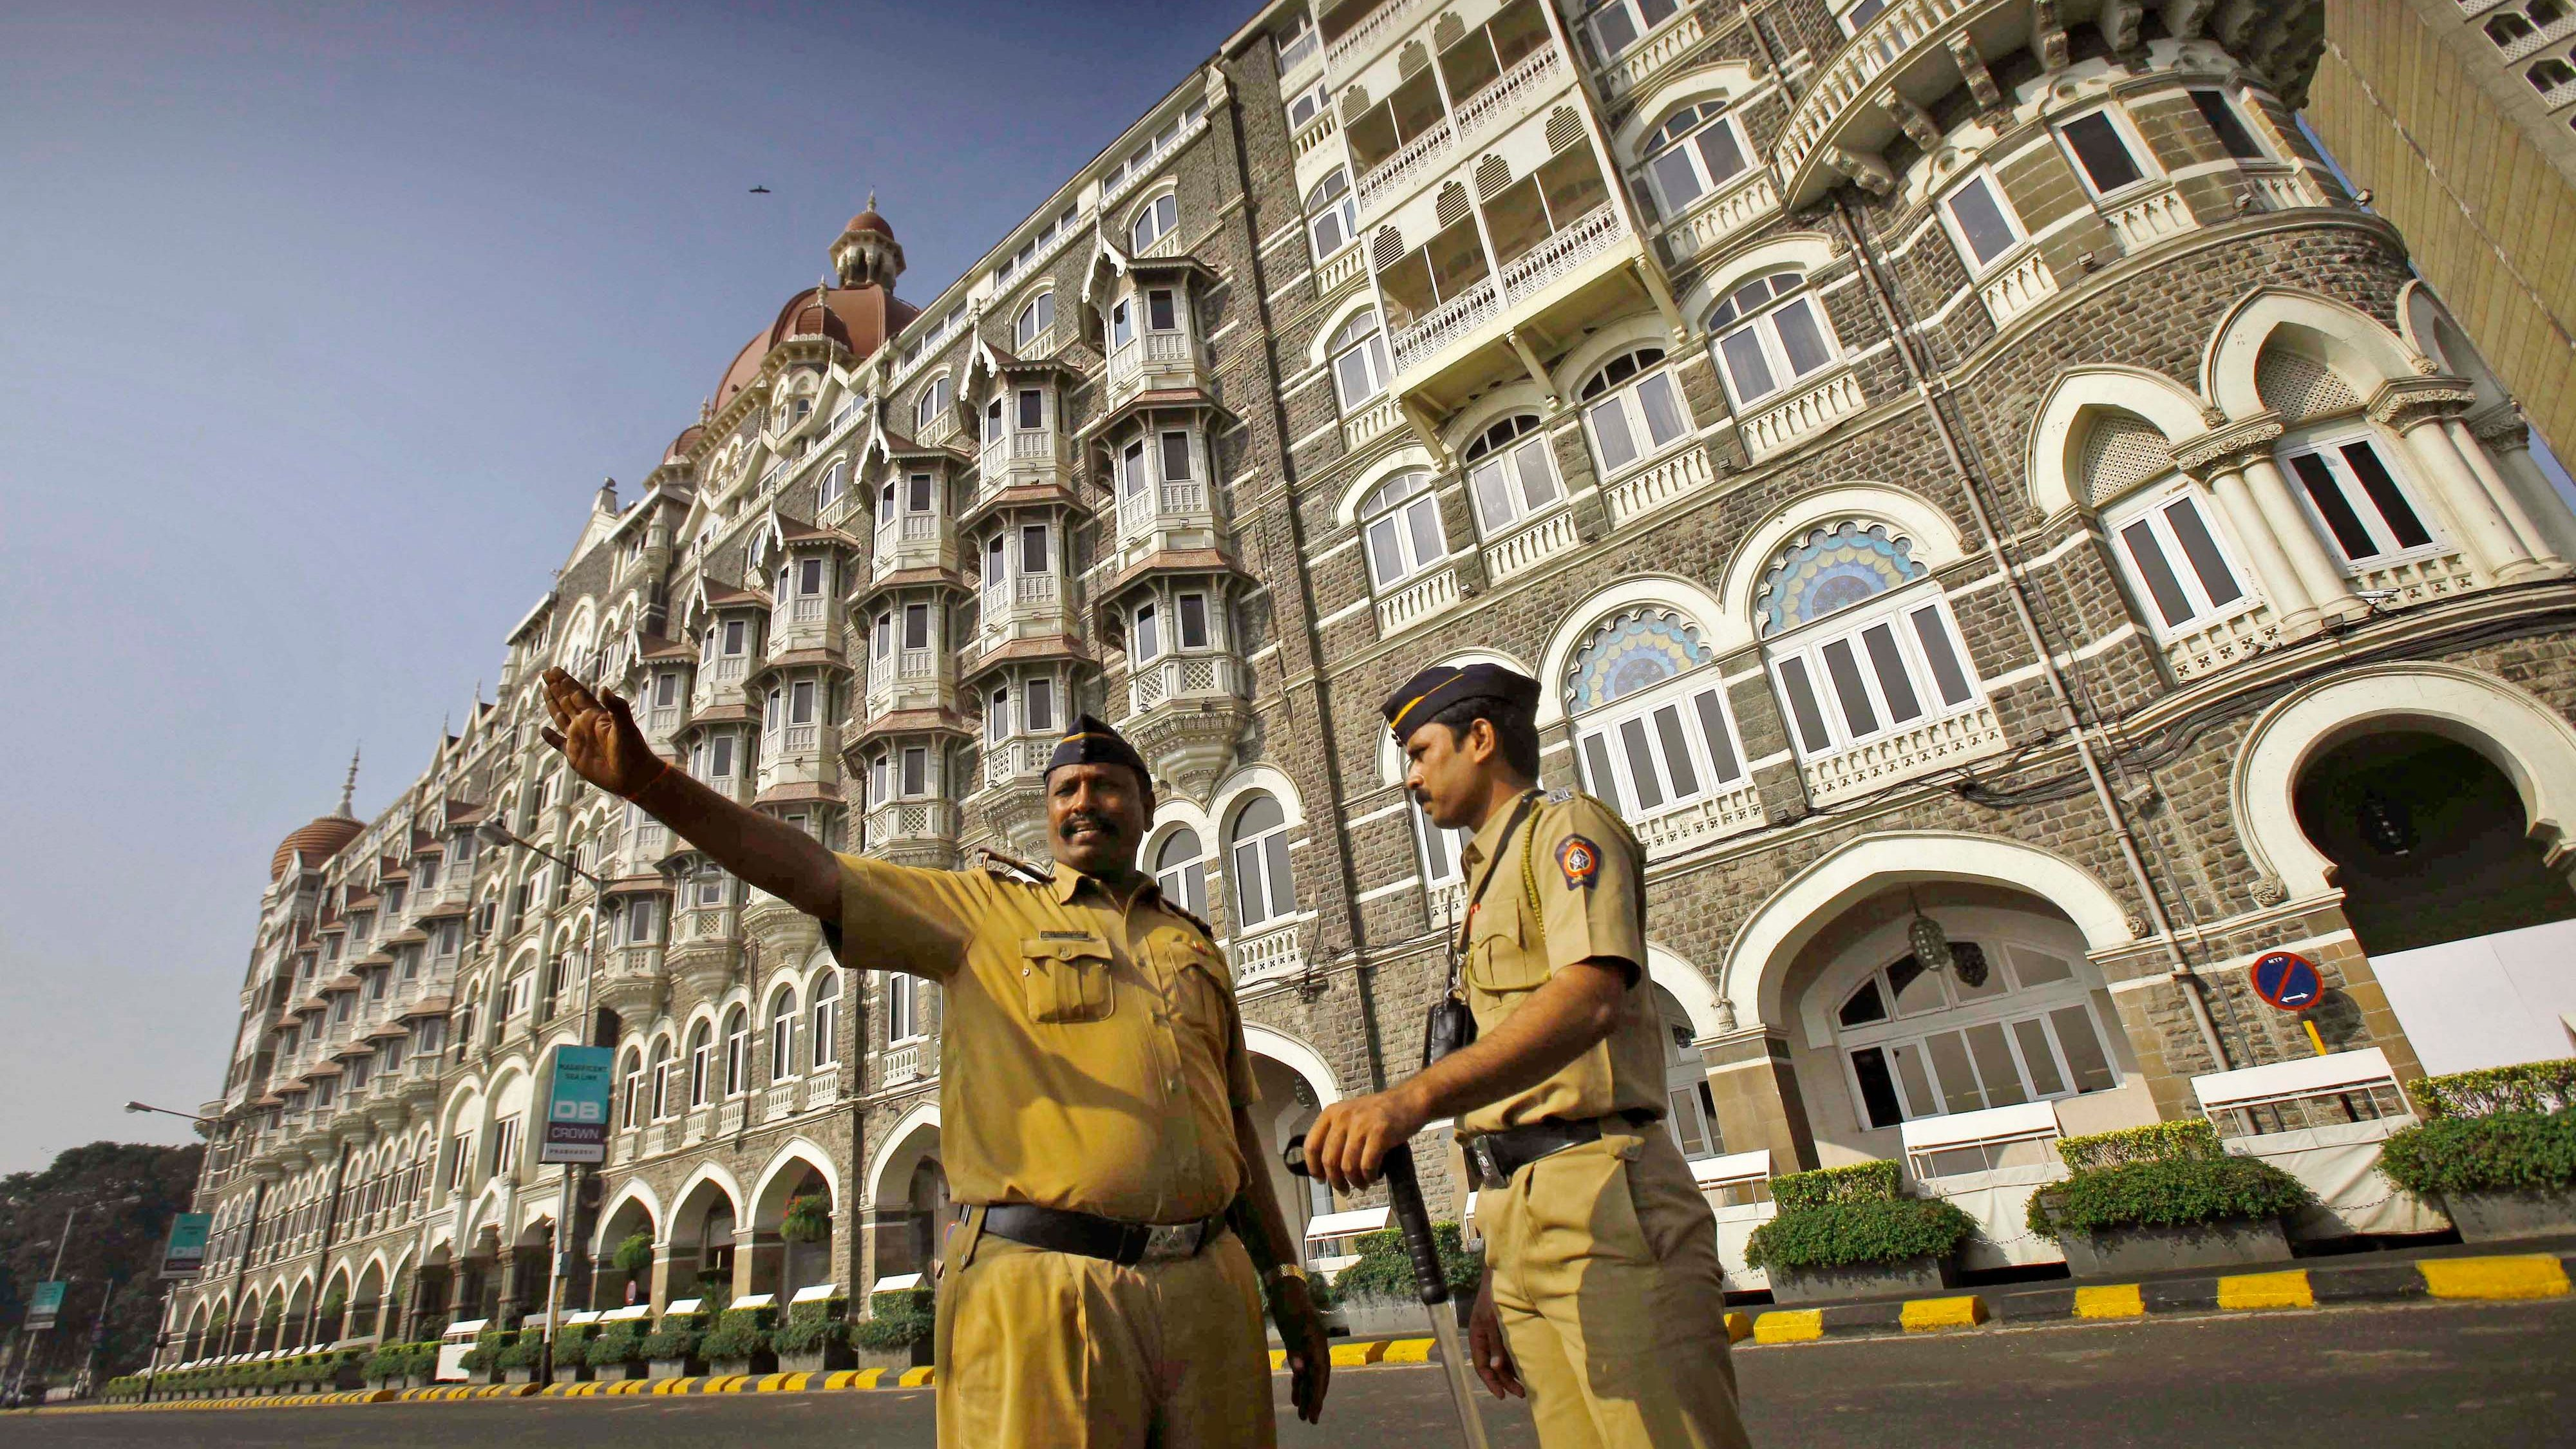 Indian police officers stand outside the Taj Mahal Hotel, one of the sites of the terror attack in Mumbai, India, on its fourth anniversary Monday, Nov. 26, 2012. India secretly executed the lone surviving gunman Mohammed Ajmal Kasab on Nov. 21, from the 2008 Mumbai terror attack, four years after Pakistani gunmen blazed through India's financial capital, killing 166 people and shattering relations between the nuclear-armed neighbors. (AP Photo/Rafiq Maqbool)